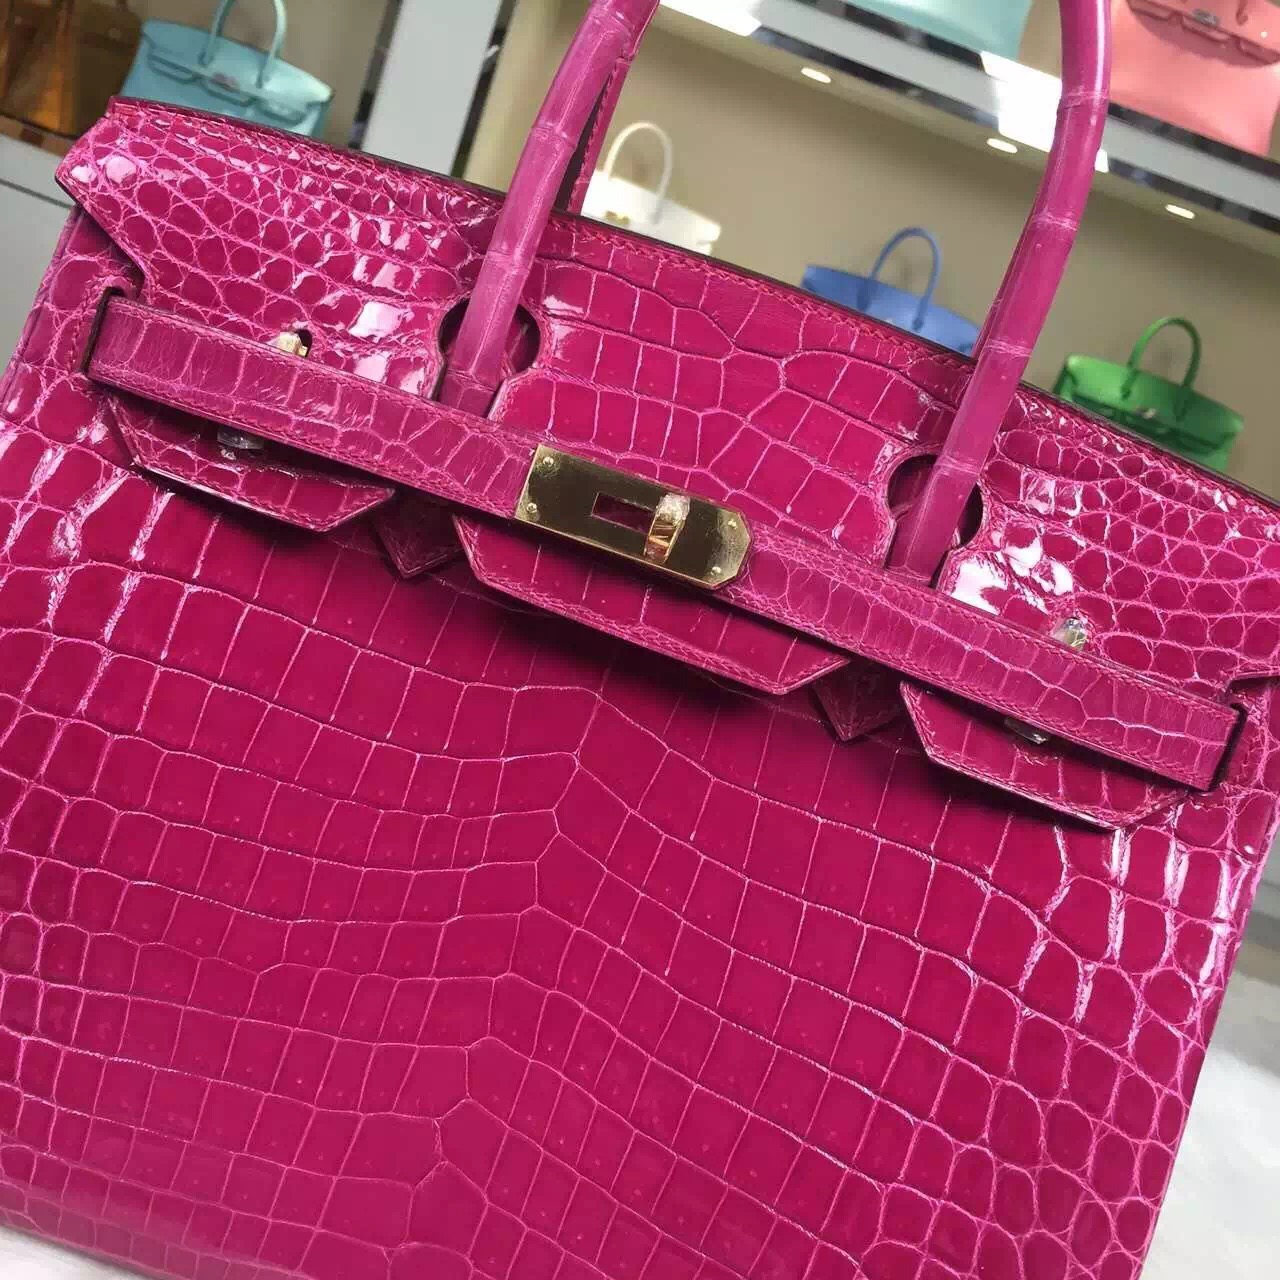 Wholesale Hermes Nicotious Crocodile Skin Birkin Bag 30CM in 5J Hot Pink